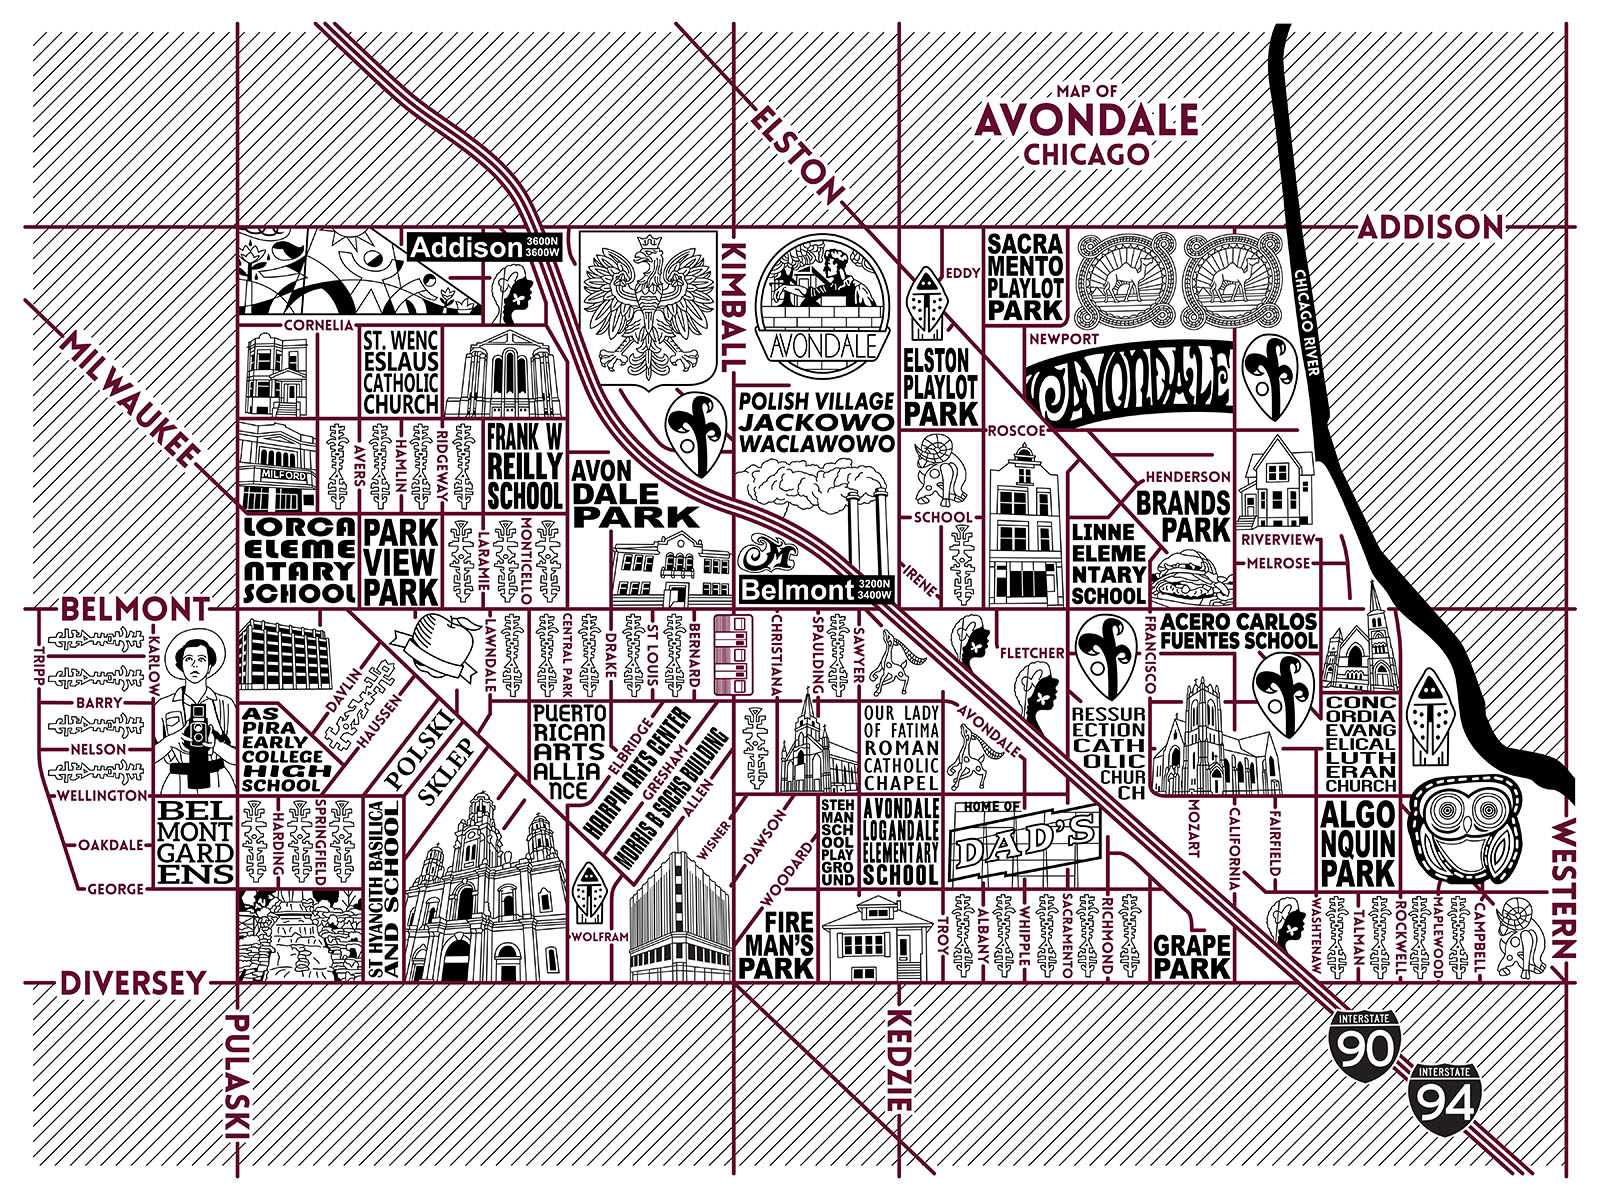 Avondale Map -  Purchase a map here